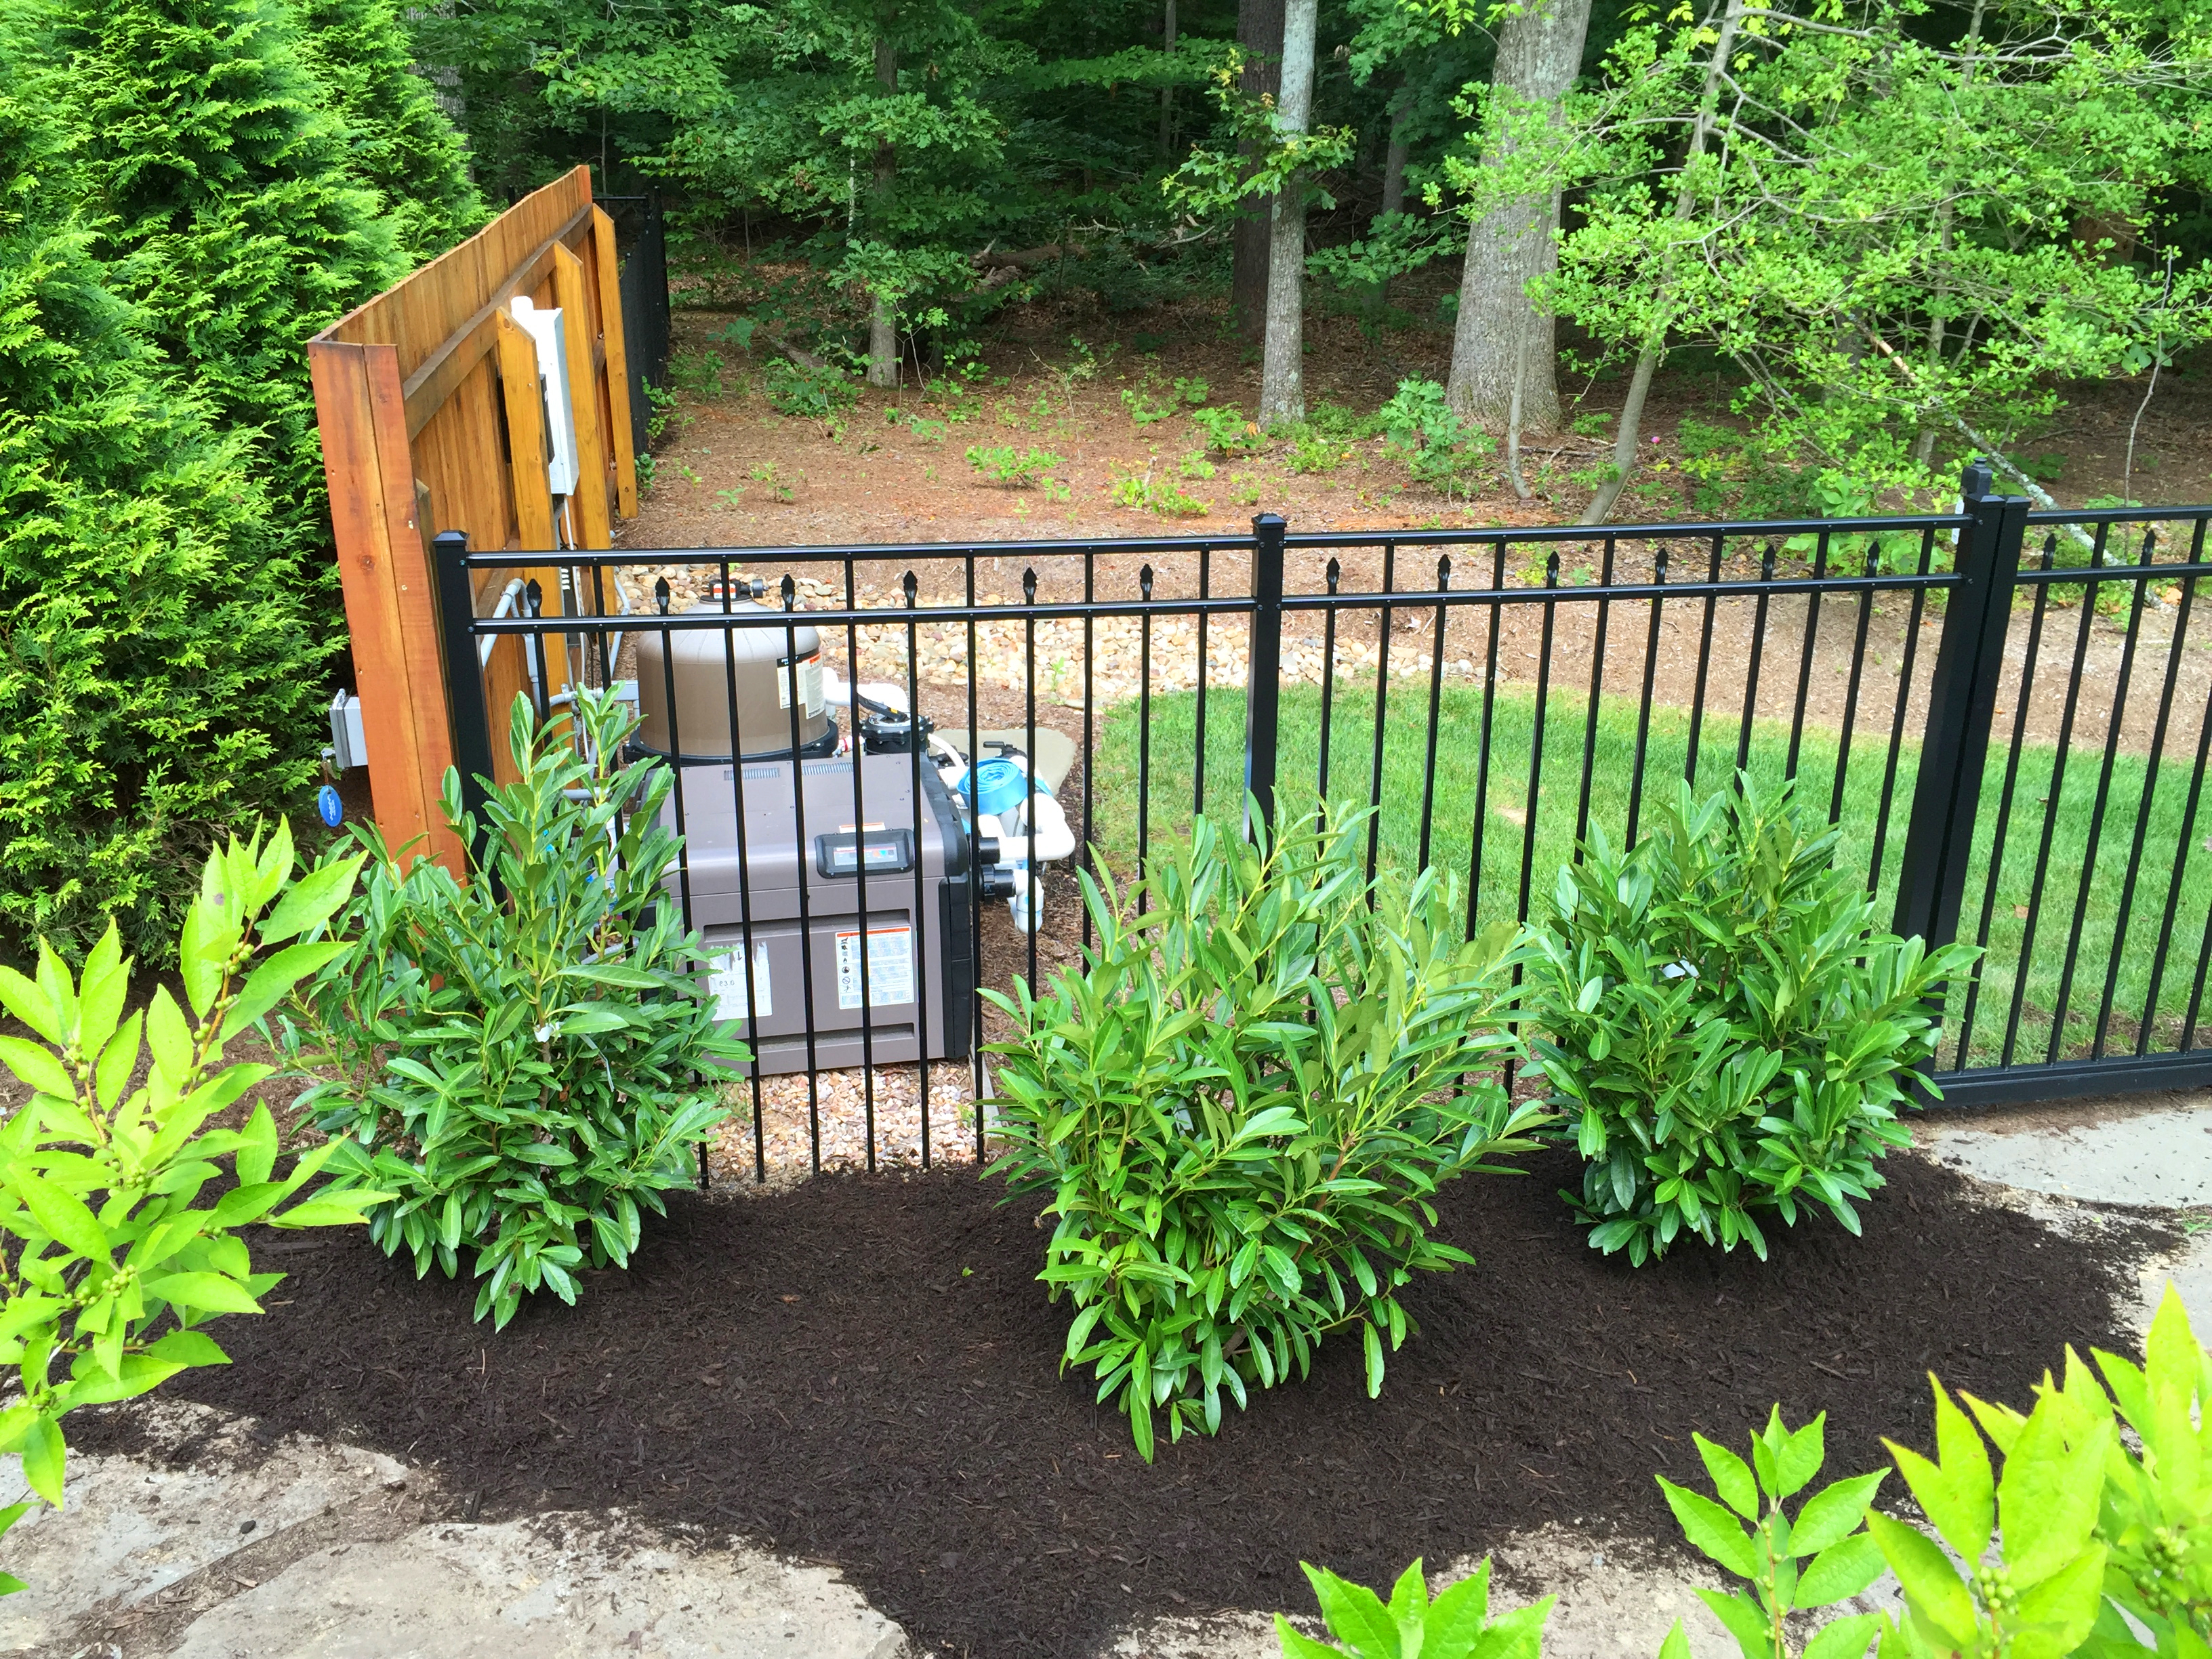 landscapers arnold 21012 landscaping lawn care